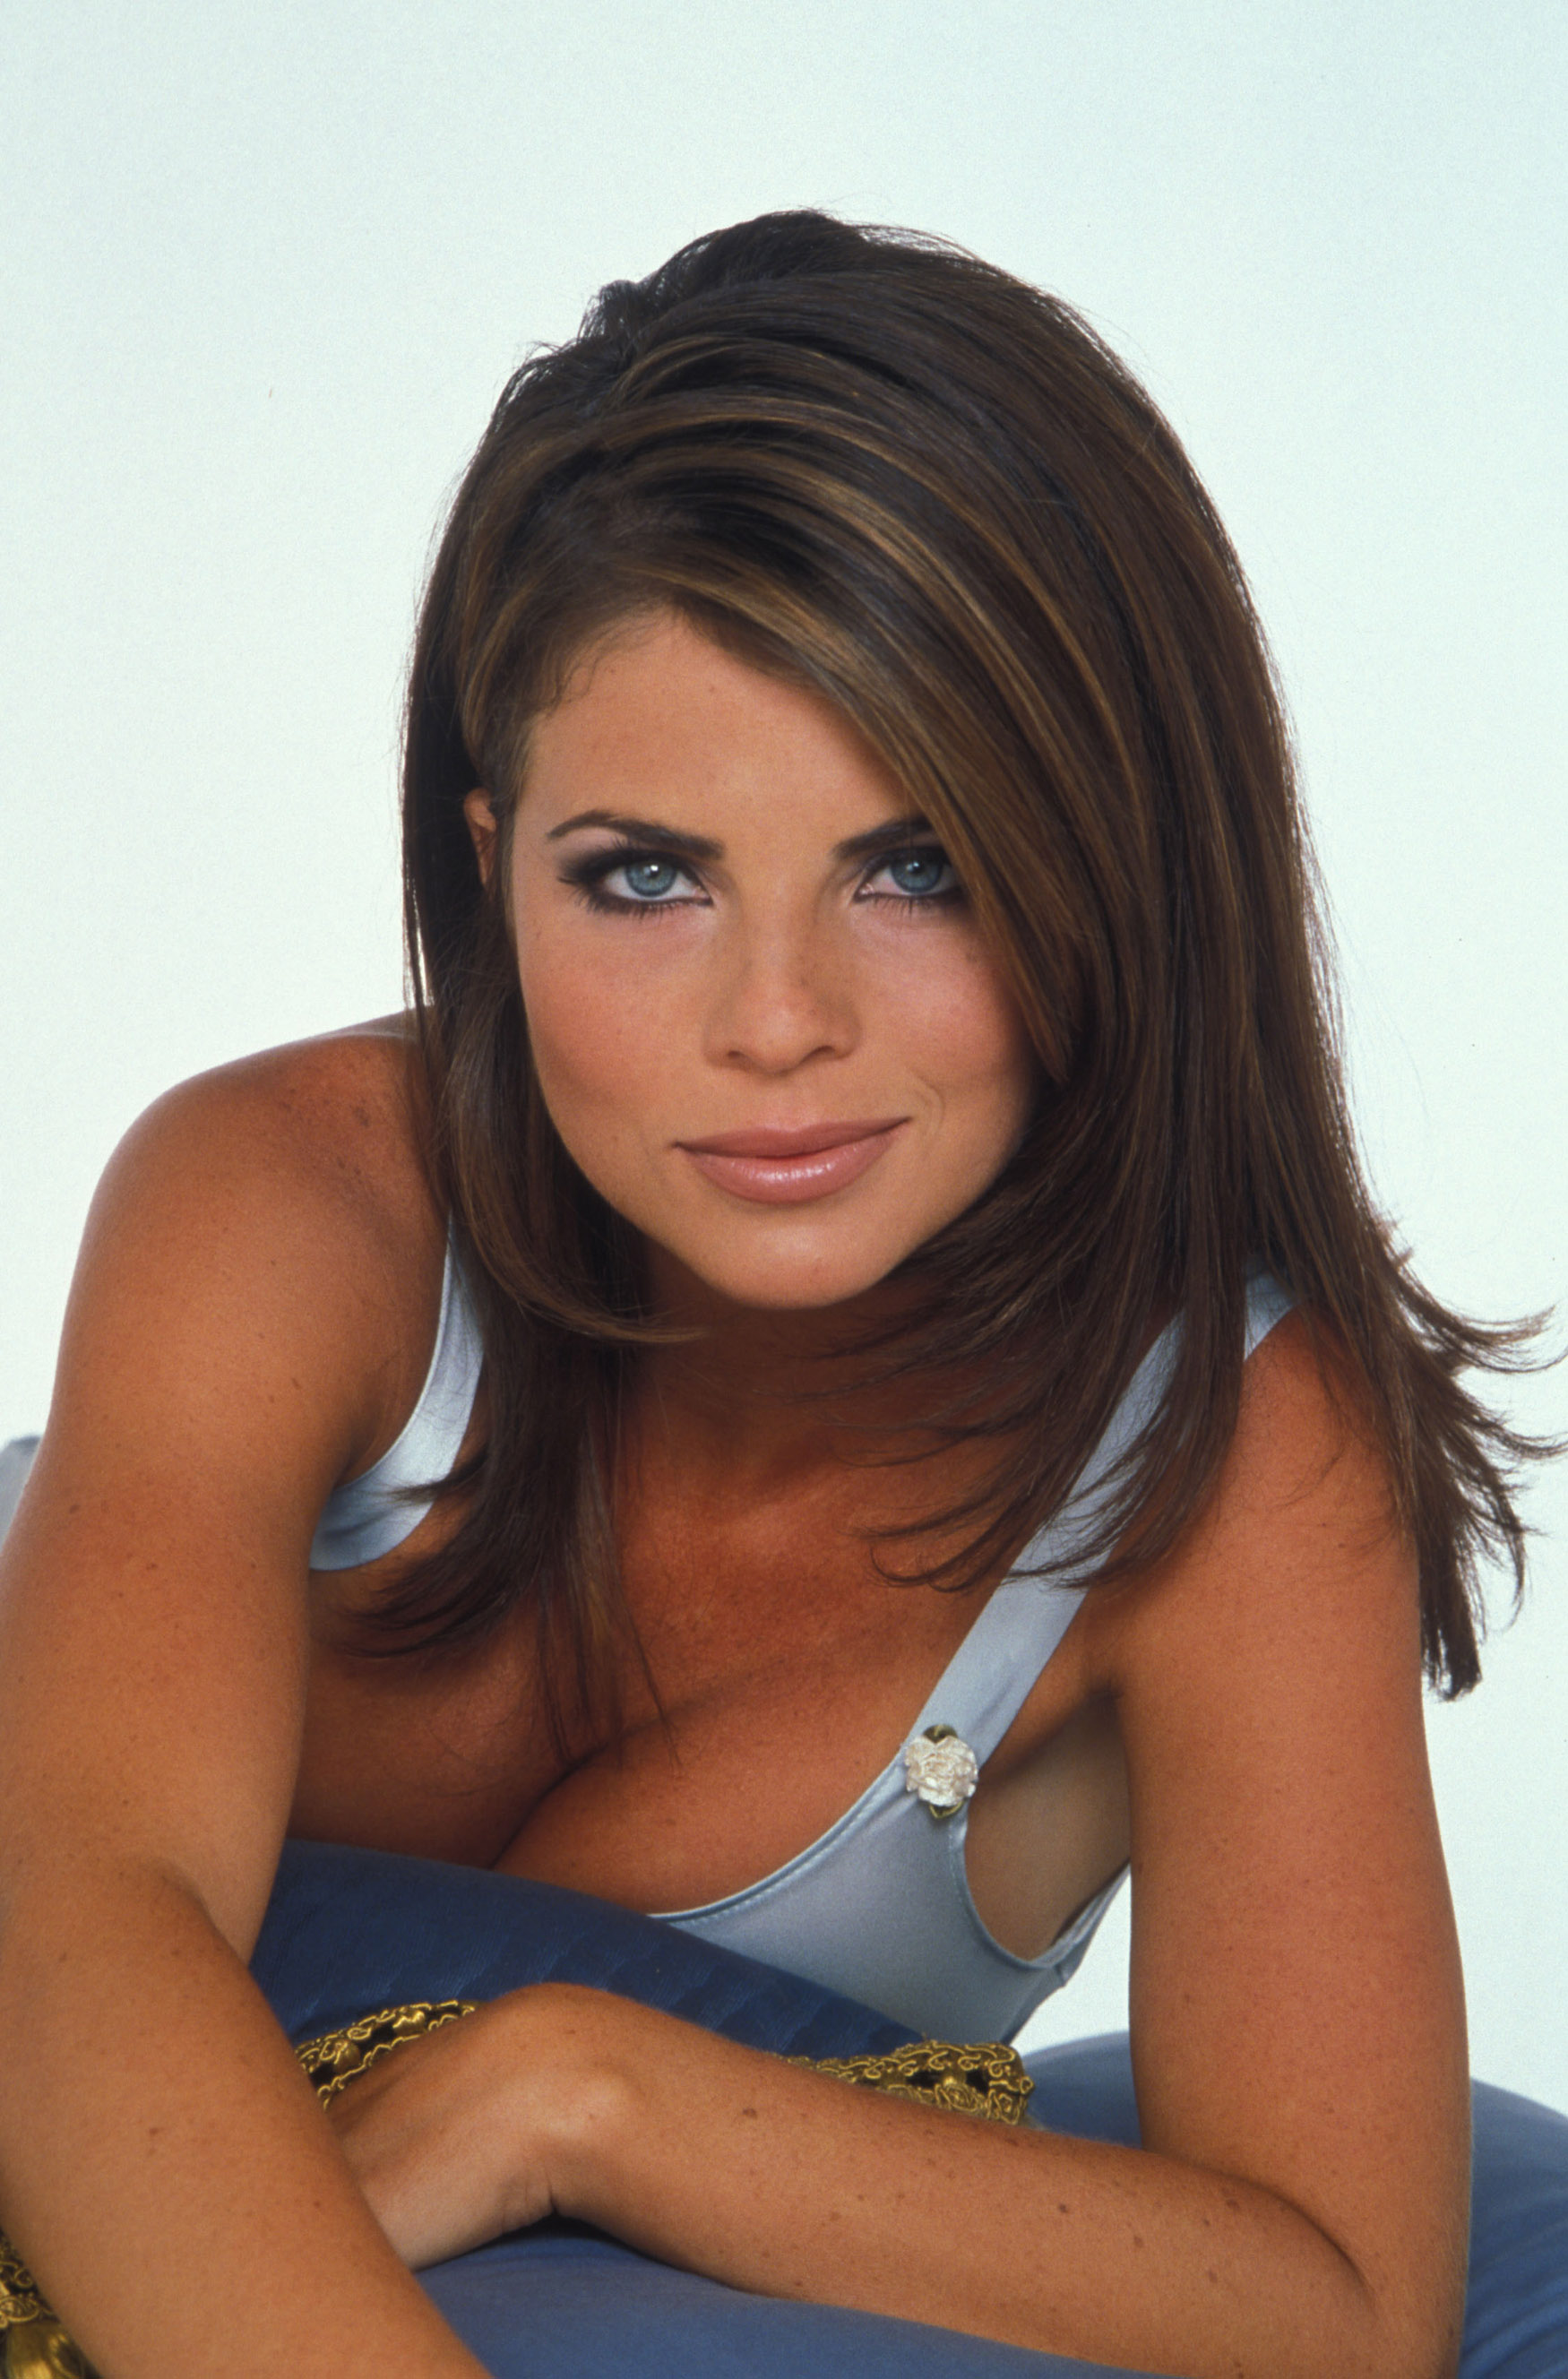 yasmine bleeth instagramyasmine bleeth фото, yasmine bleeth instagram, yasmine bleeth and matthew perry, yasmine bleeth now, yasmine bleeth net worth, yasmine bleeth 2016, yasmine bleeth imdb, yasmine bleeth hot, yasmine bleeth origine, yasmine bleeth 2000